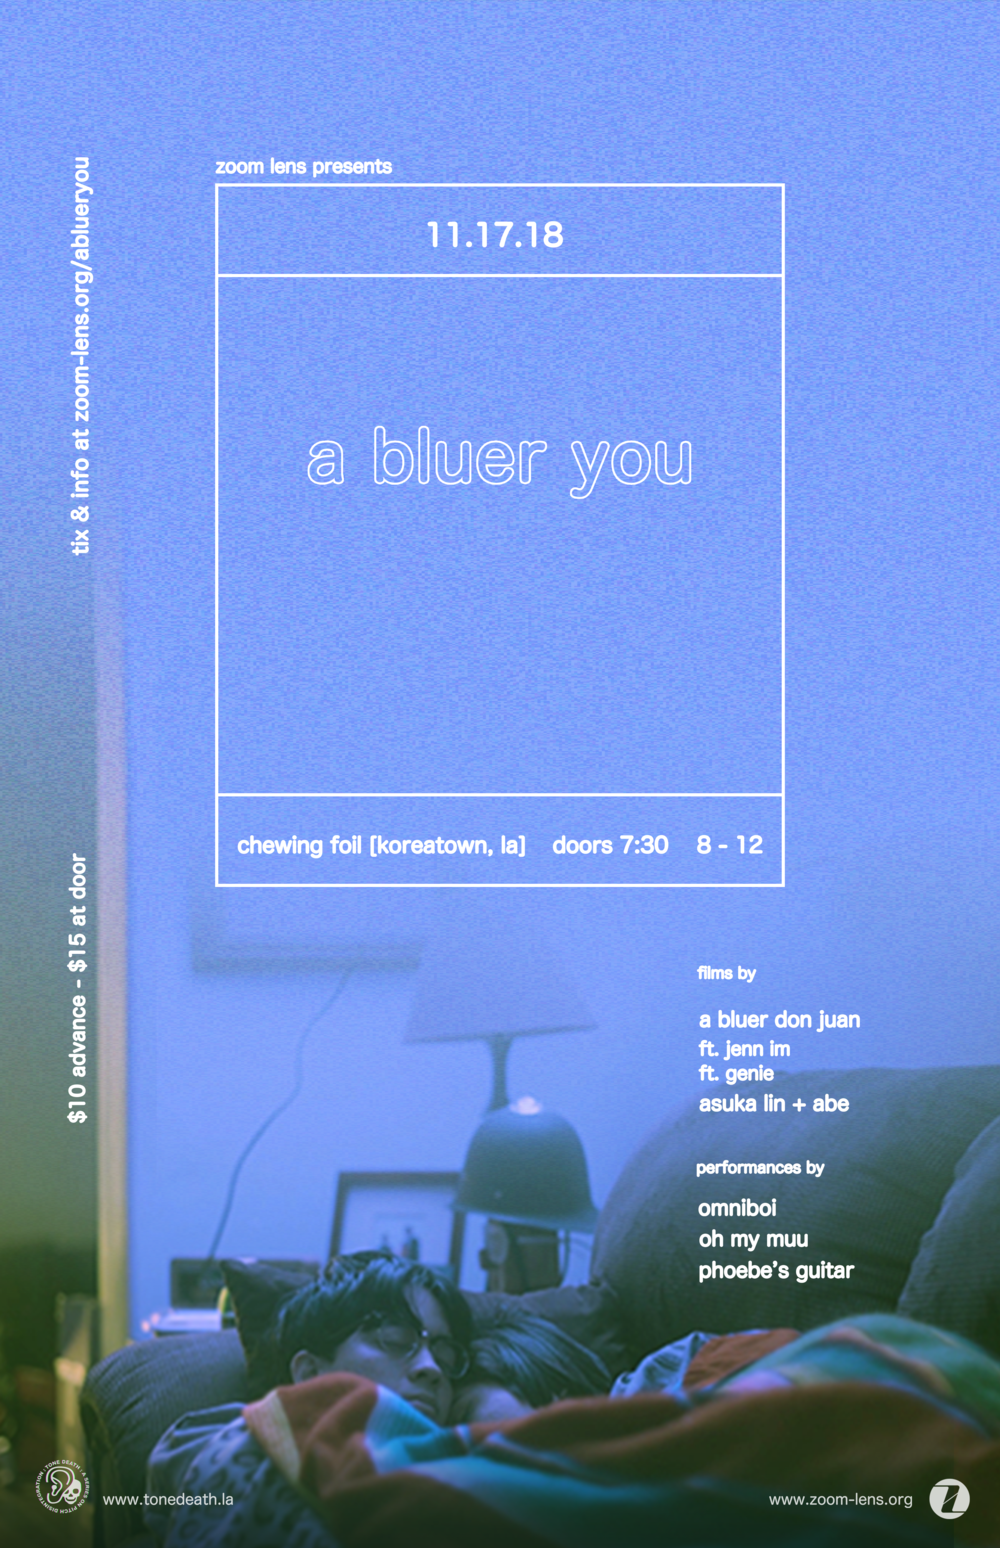 GN_CO_ZL_BluerYou_poster_11x17.png